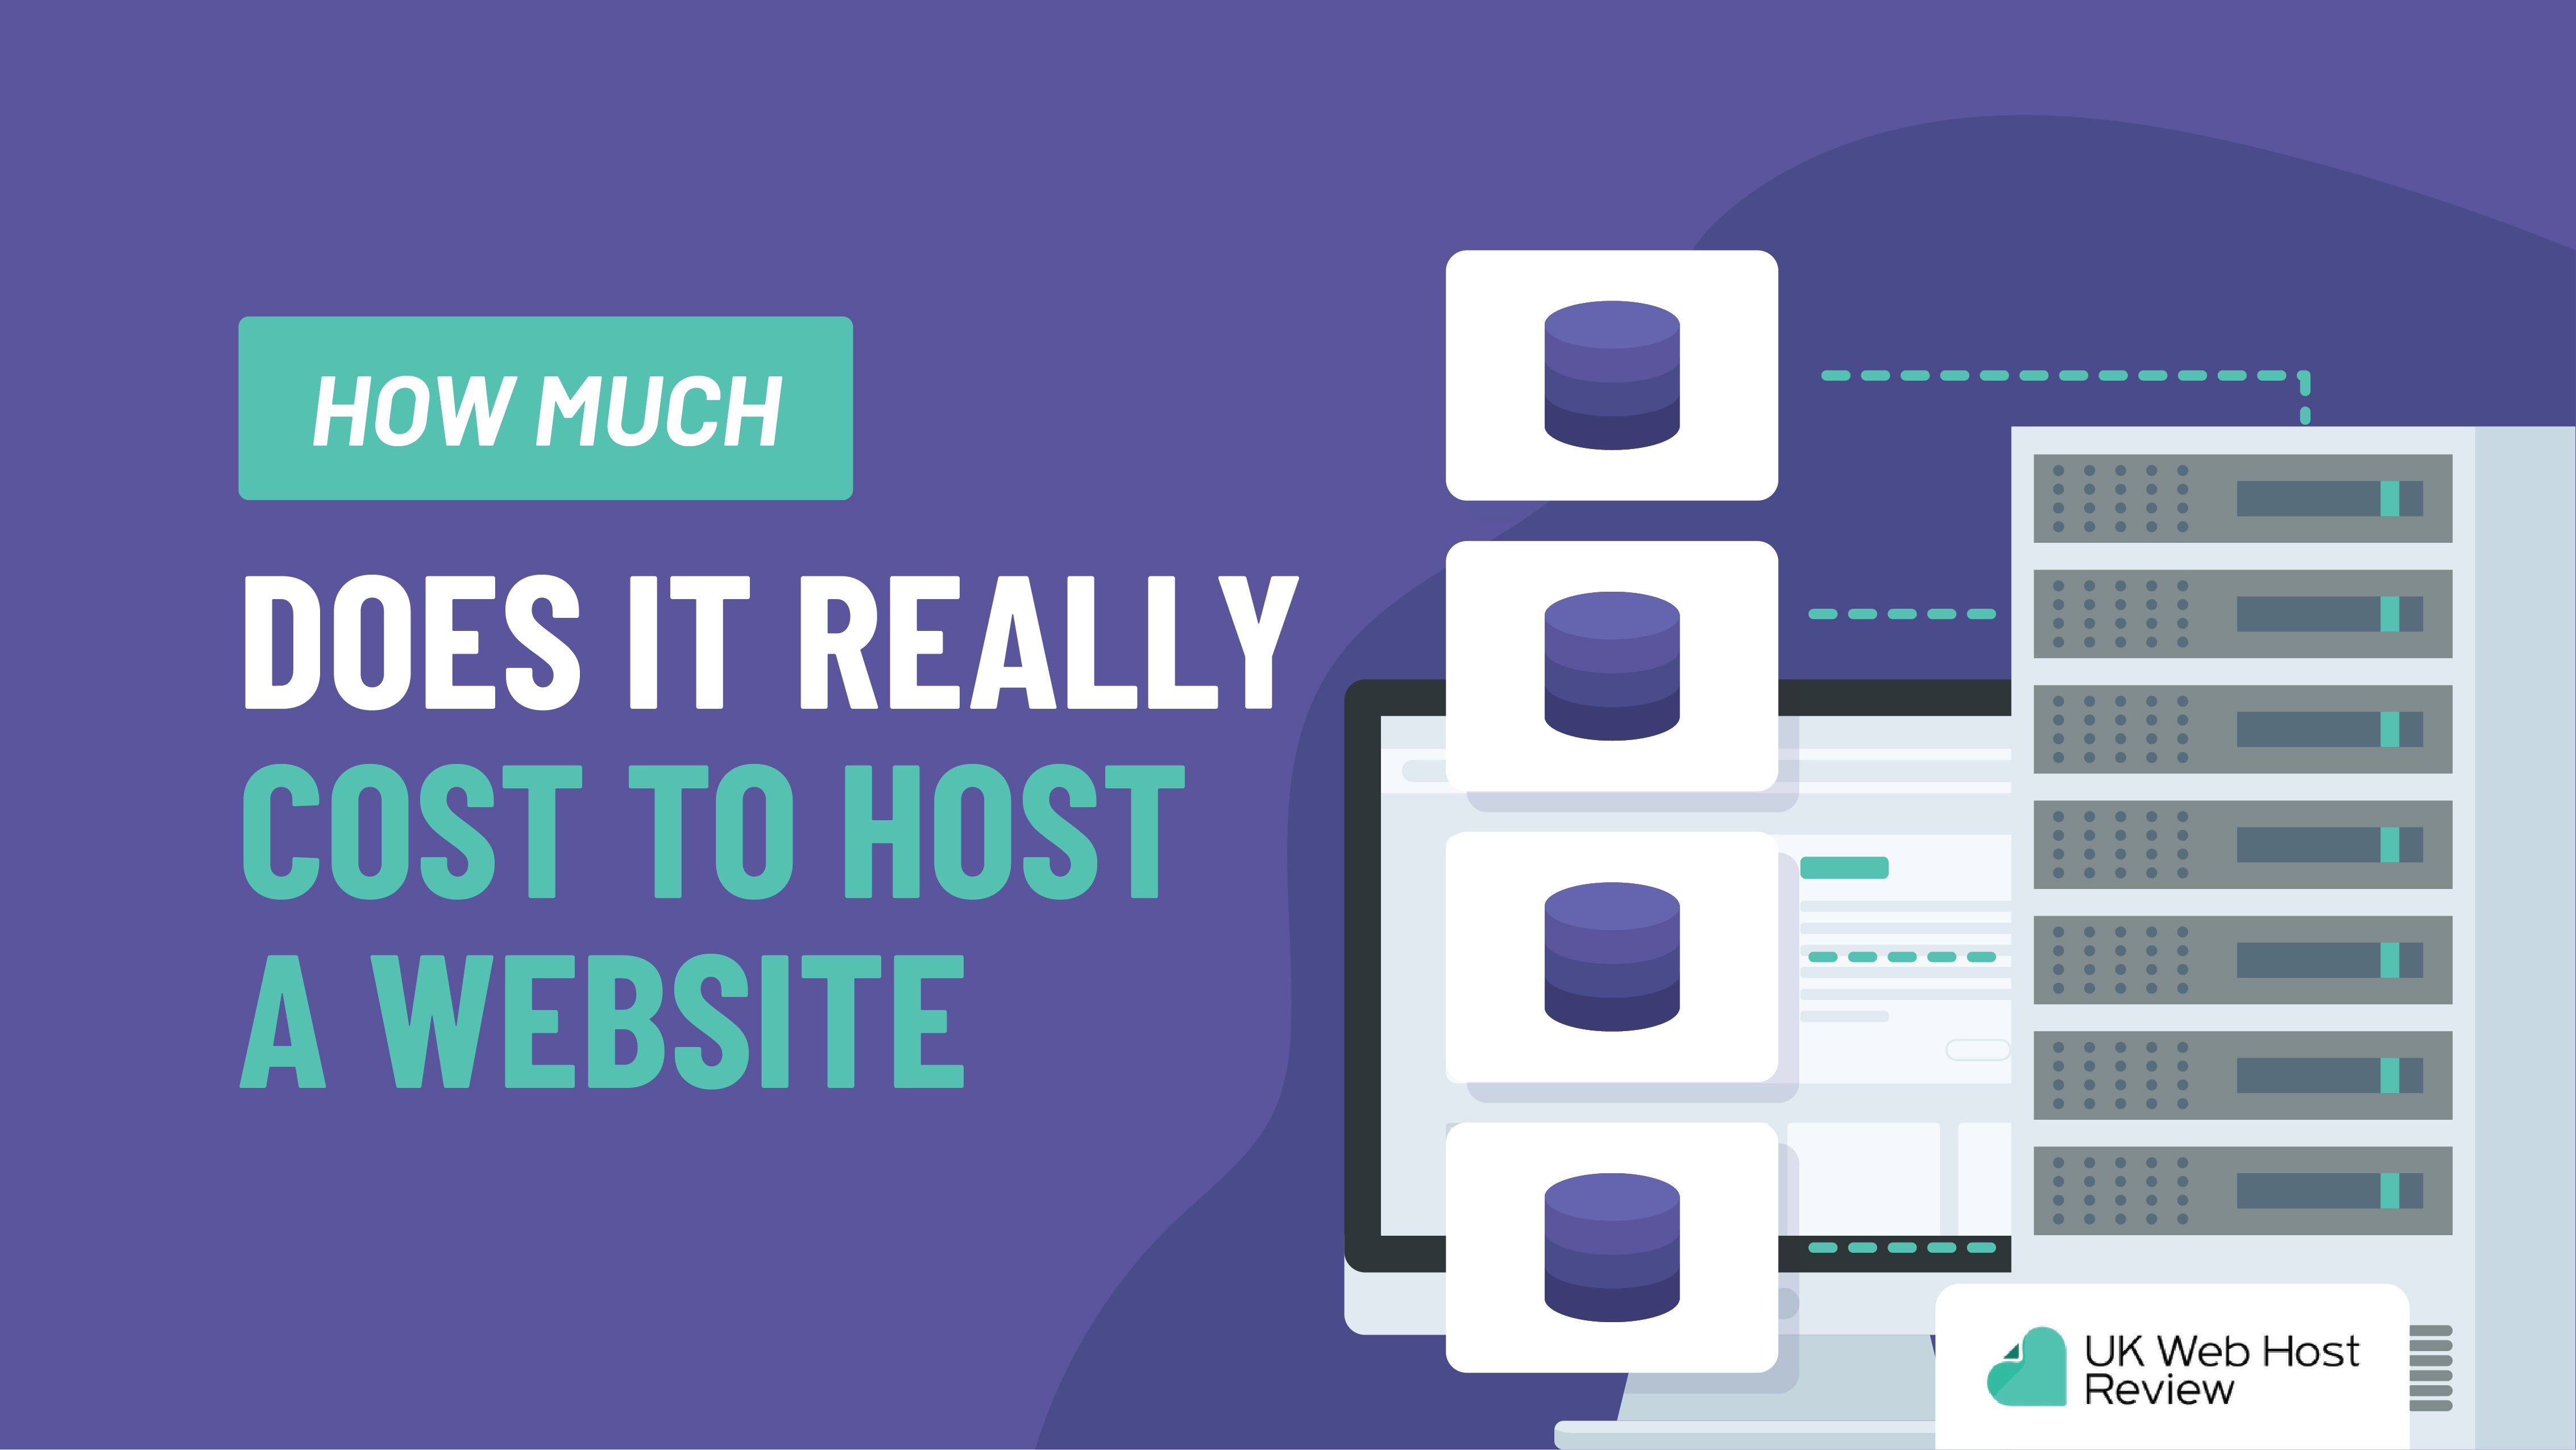 How Much Does it Really Cost to Host a Website?